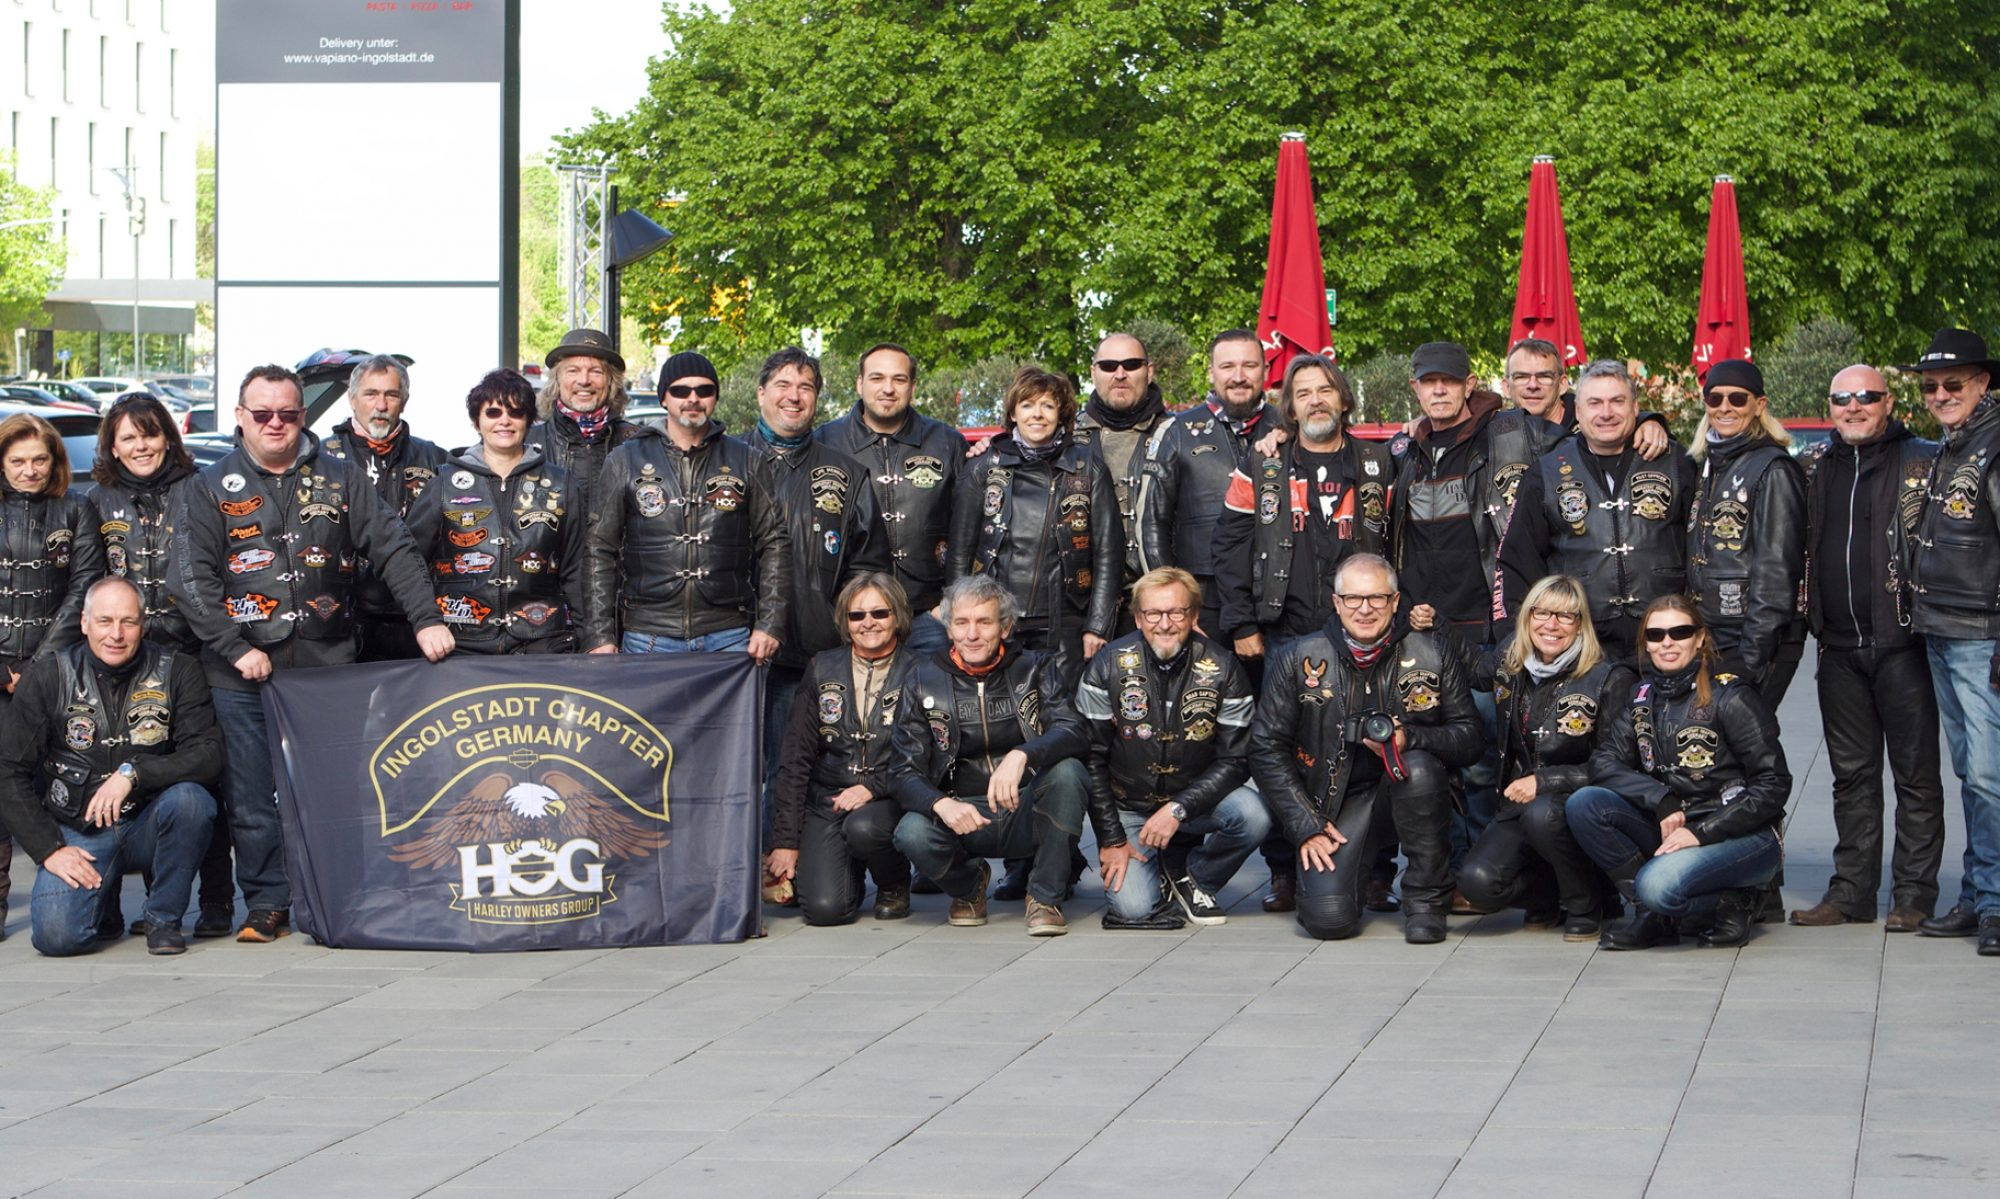 H.O.G. Ingolstadt Chapter Germany